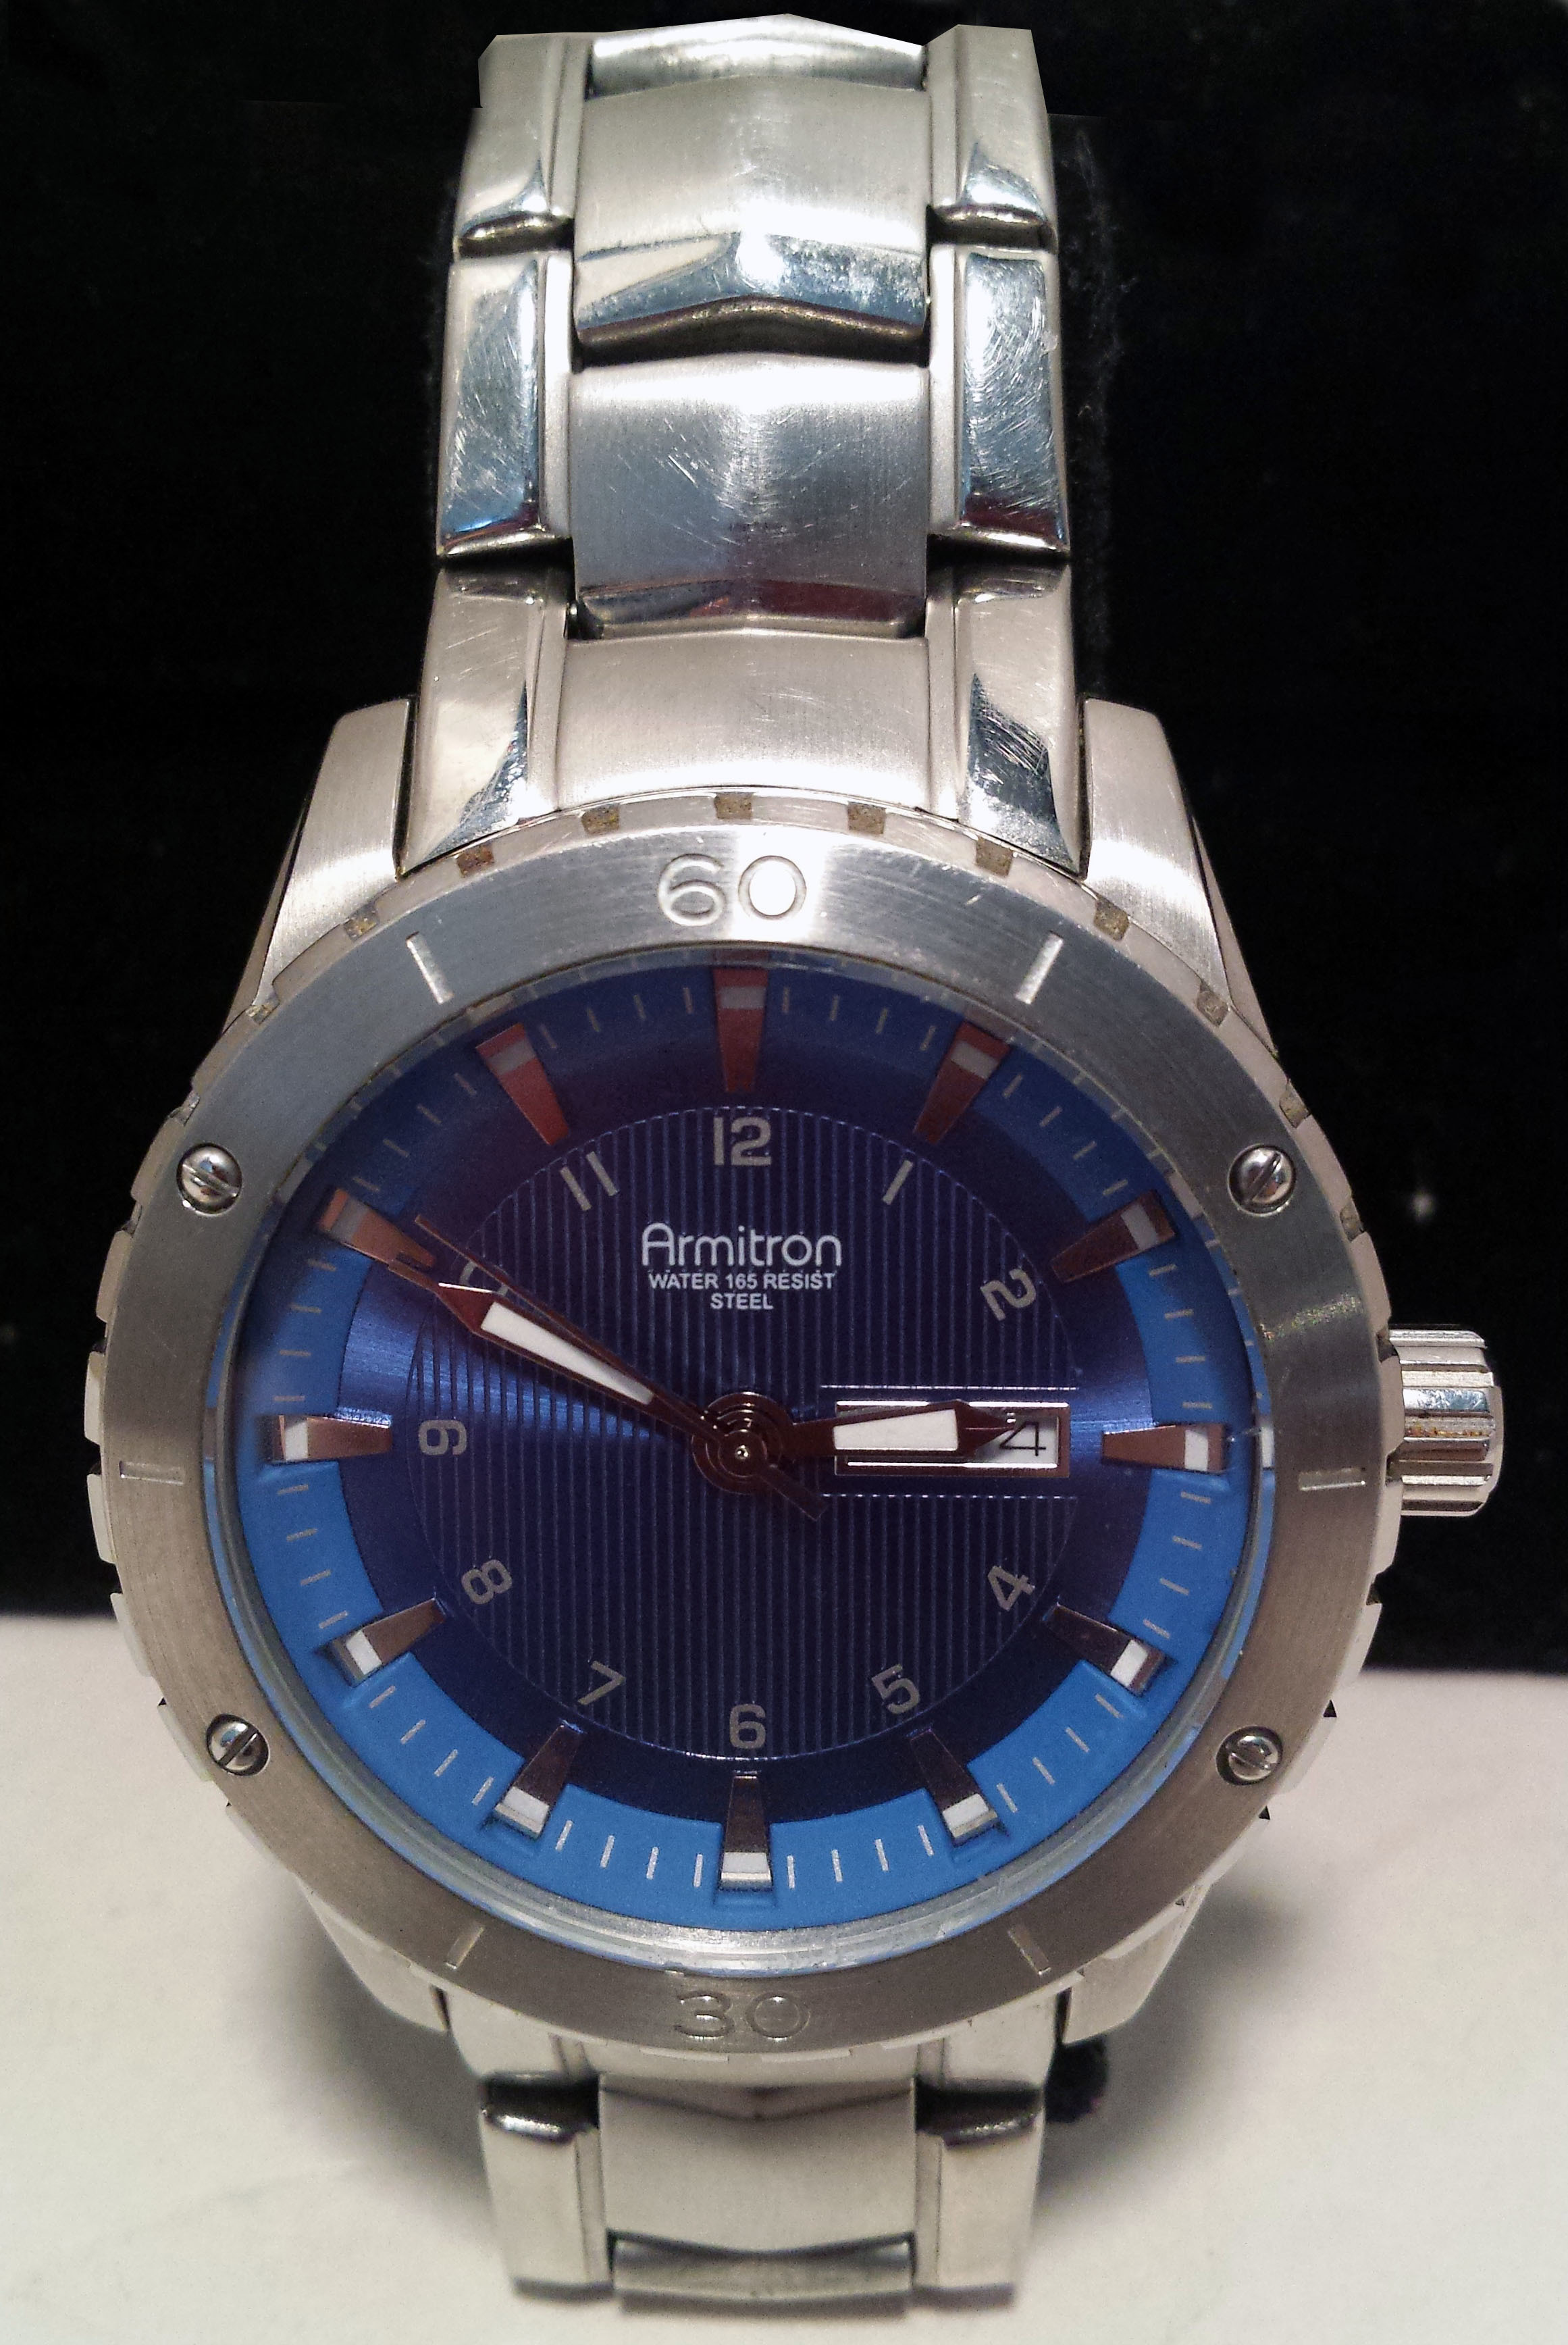 Armitron Mens Watch 20/4834SV GM00 Blue Face 5 ATM - Needs Battery